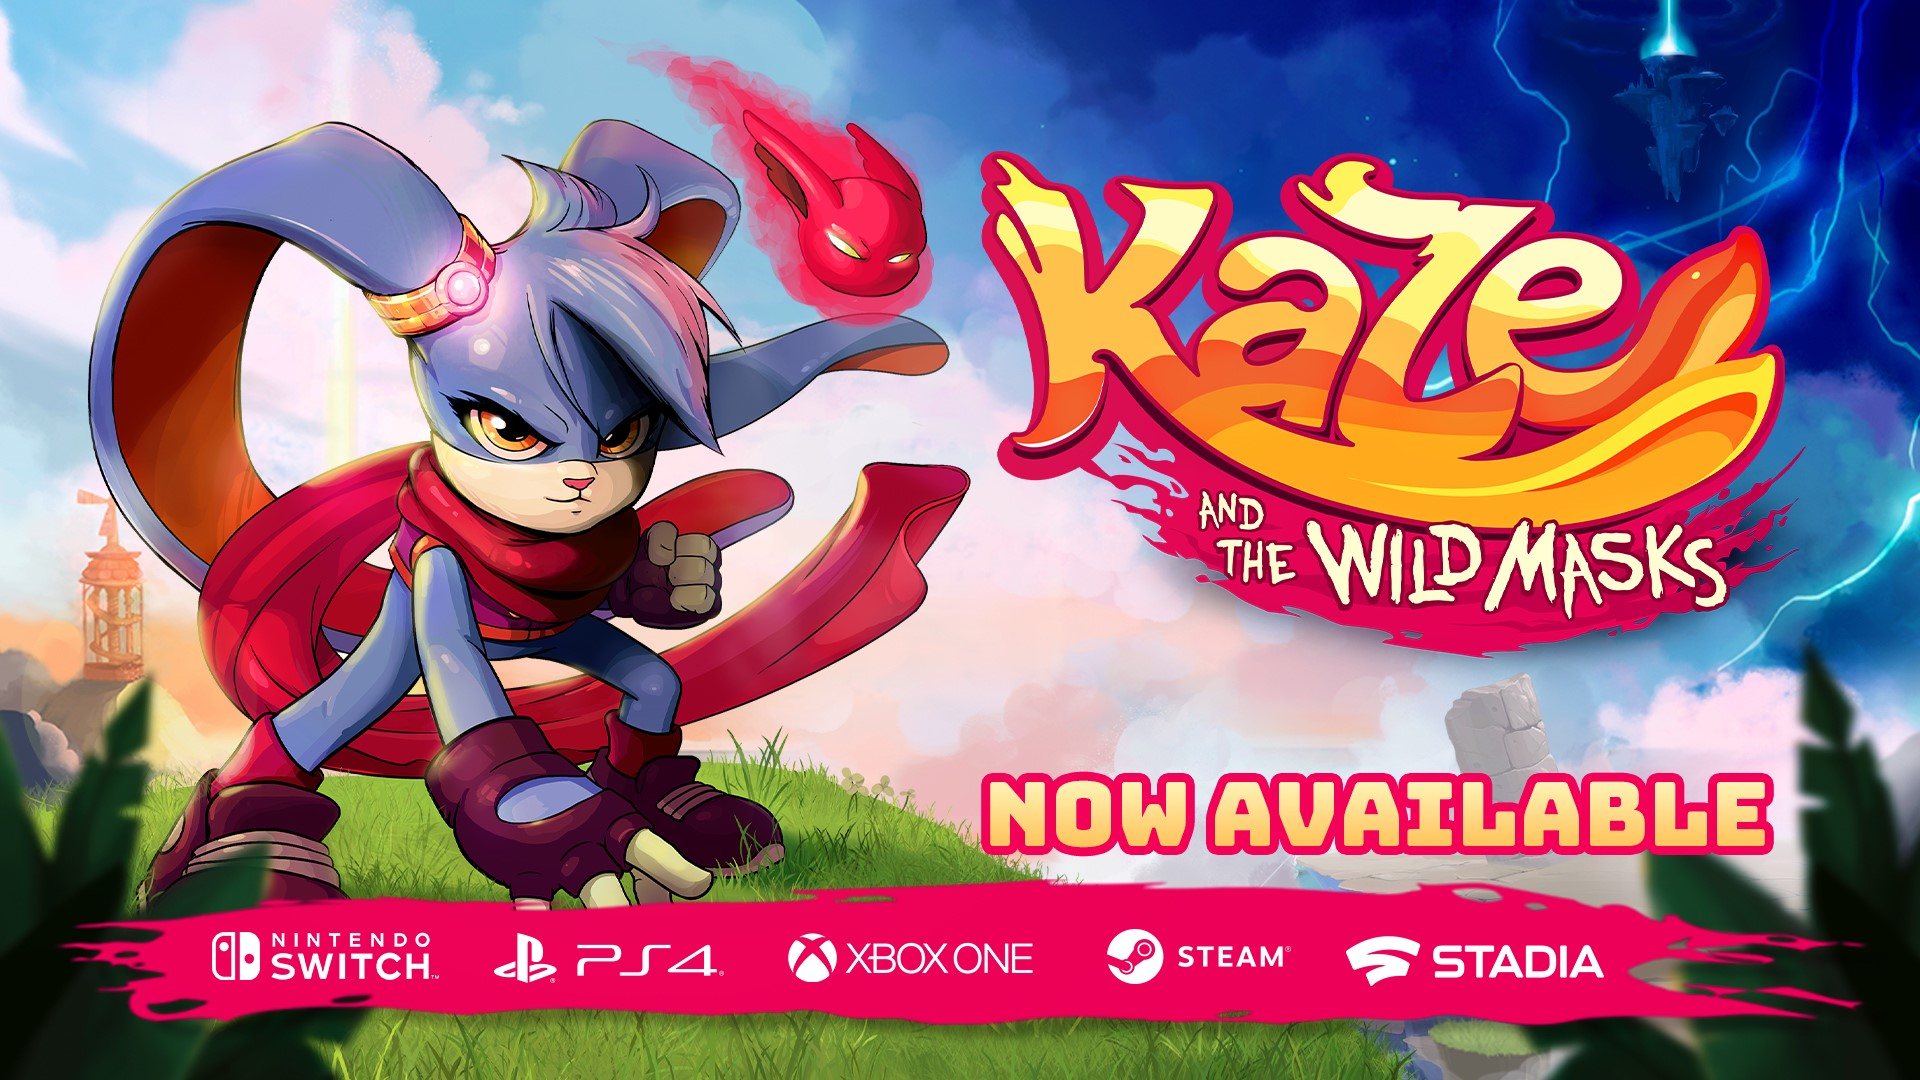 Critically acclaimed Kaze and the Wild Masks jumps from a childhood dream into reality